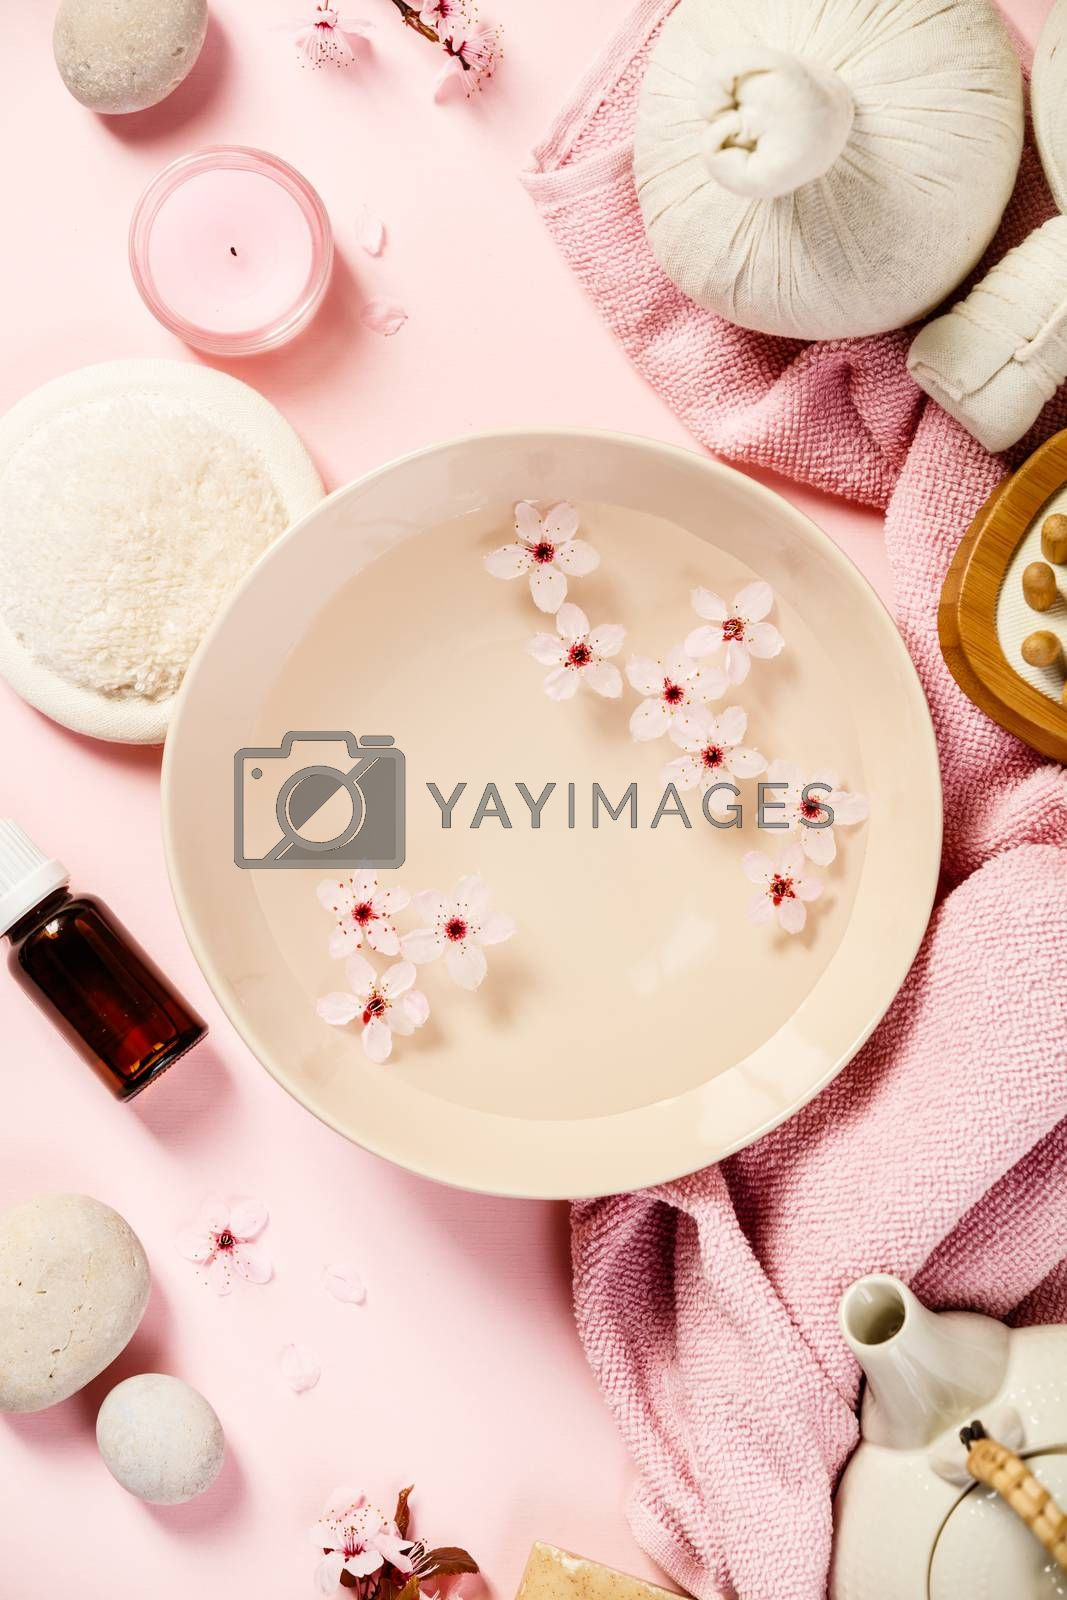 Aromatherapy, beauty, spa background with towel, perfumed flowers water, tea pot, essencial oil and candles on pastel pink background, top view. Relaxation and zen like concept. Flat lay.